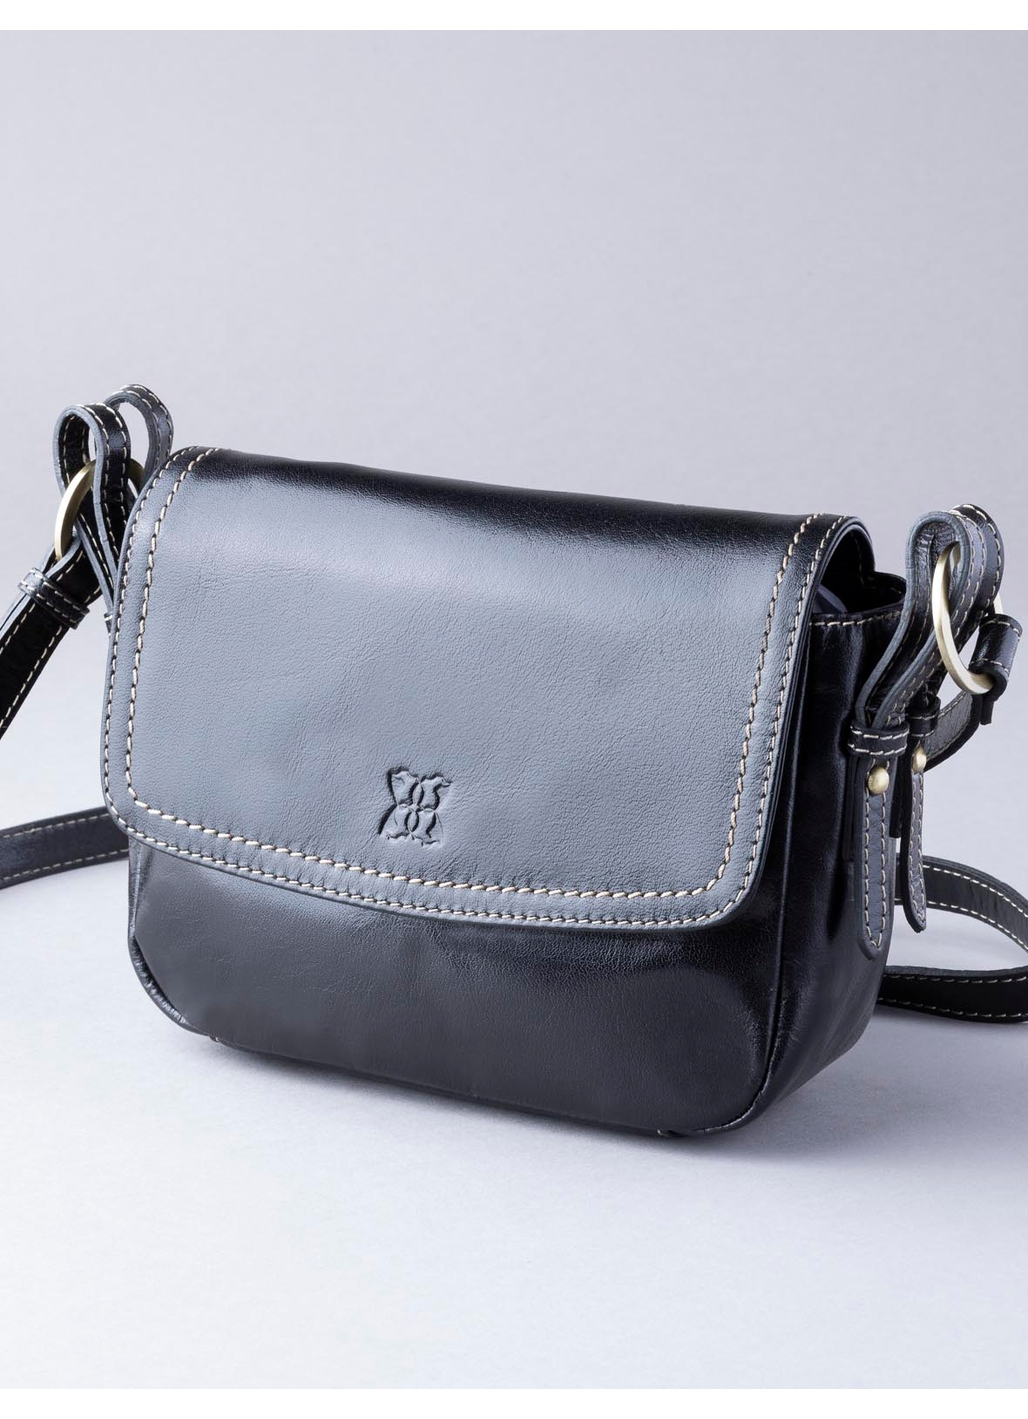 Bowness Leather Cross Body Bag in Black